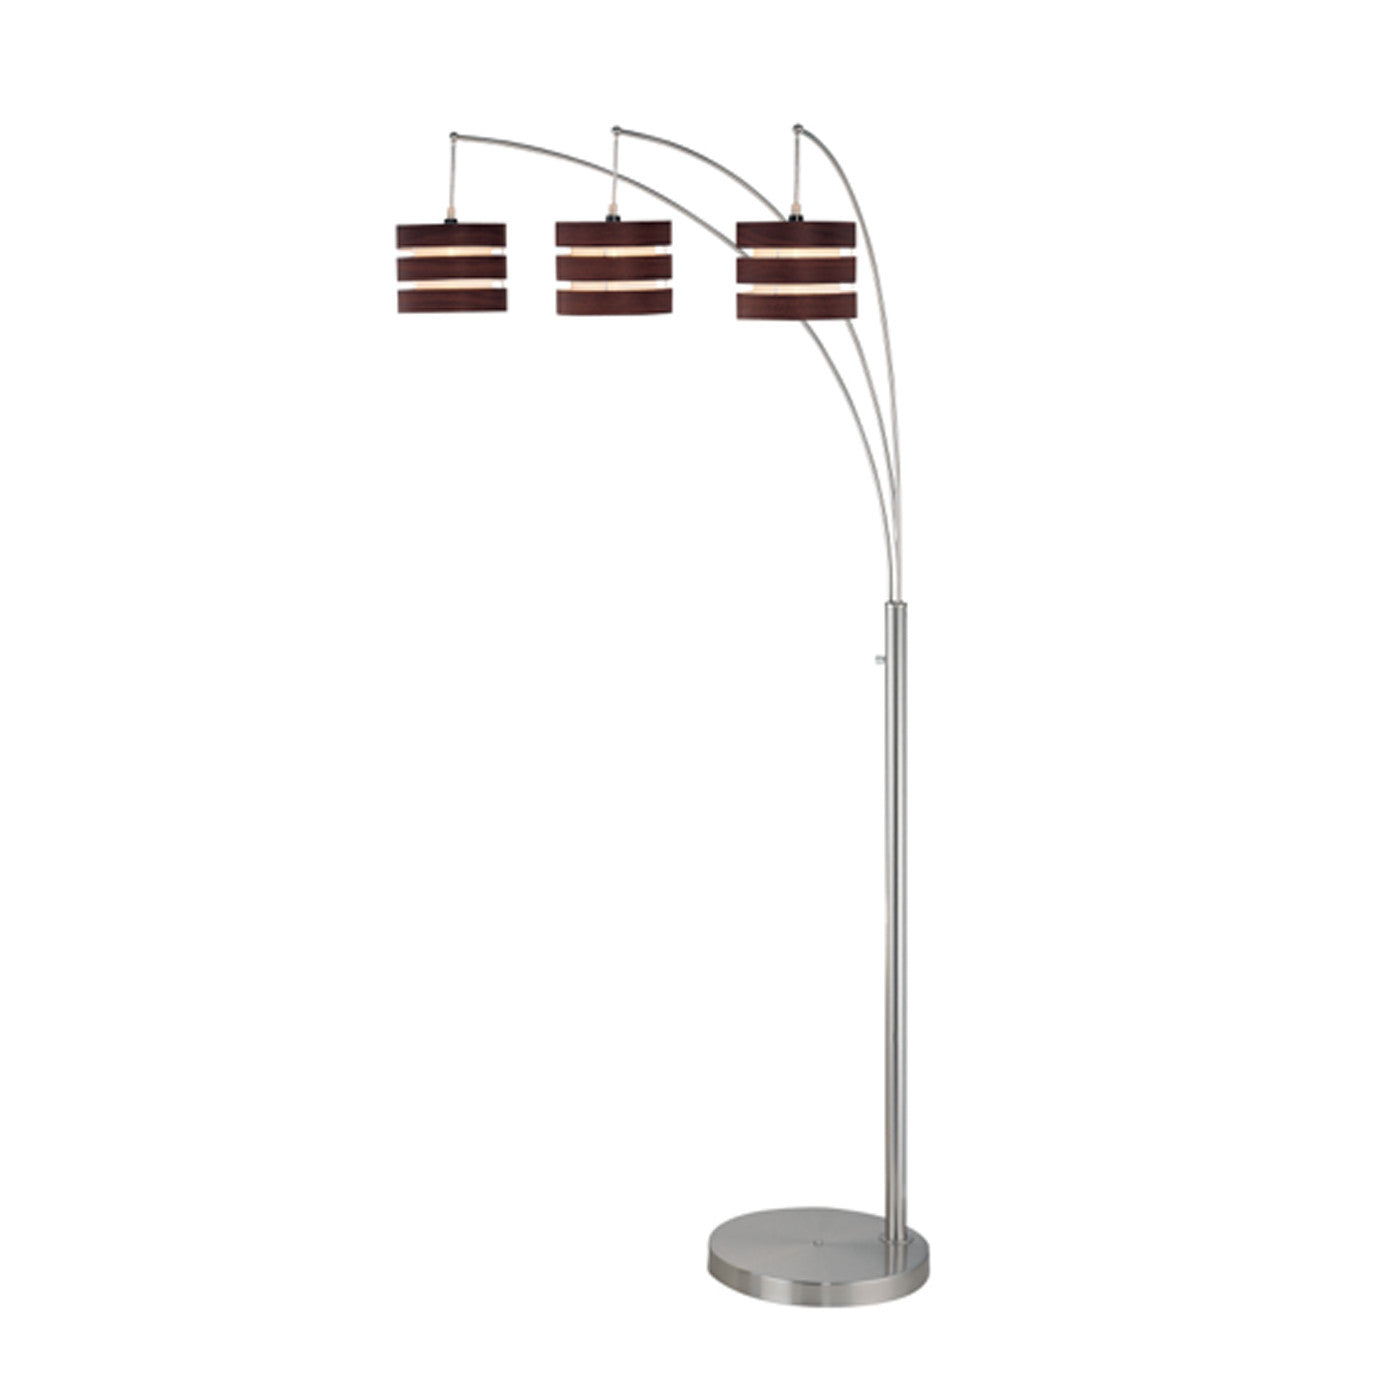 Cresta 3 Light Arch Floor Lamp   Apt2B   1 ...